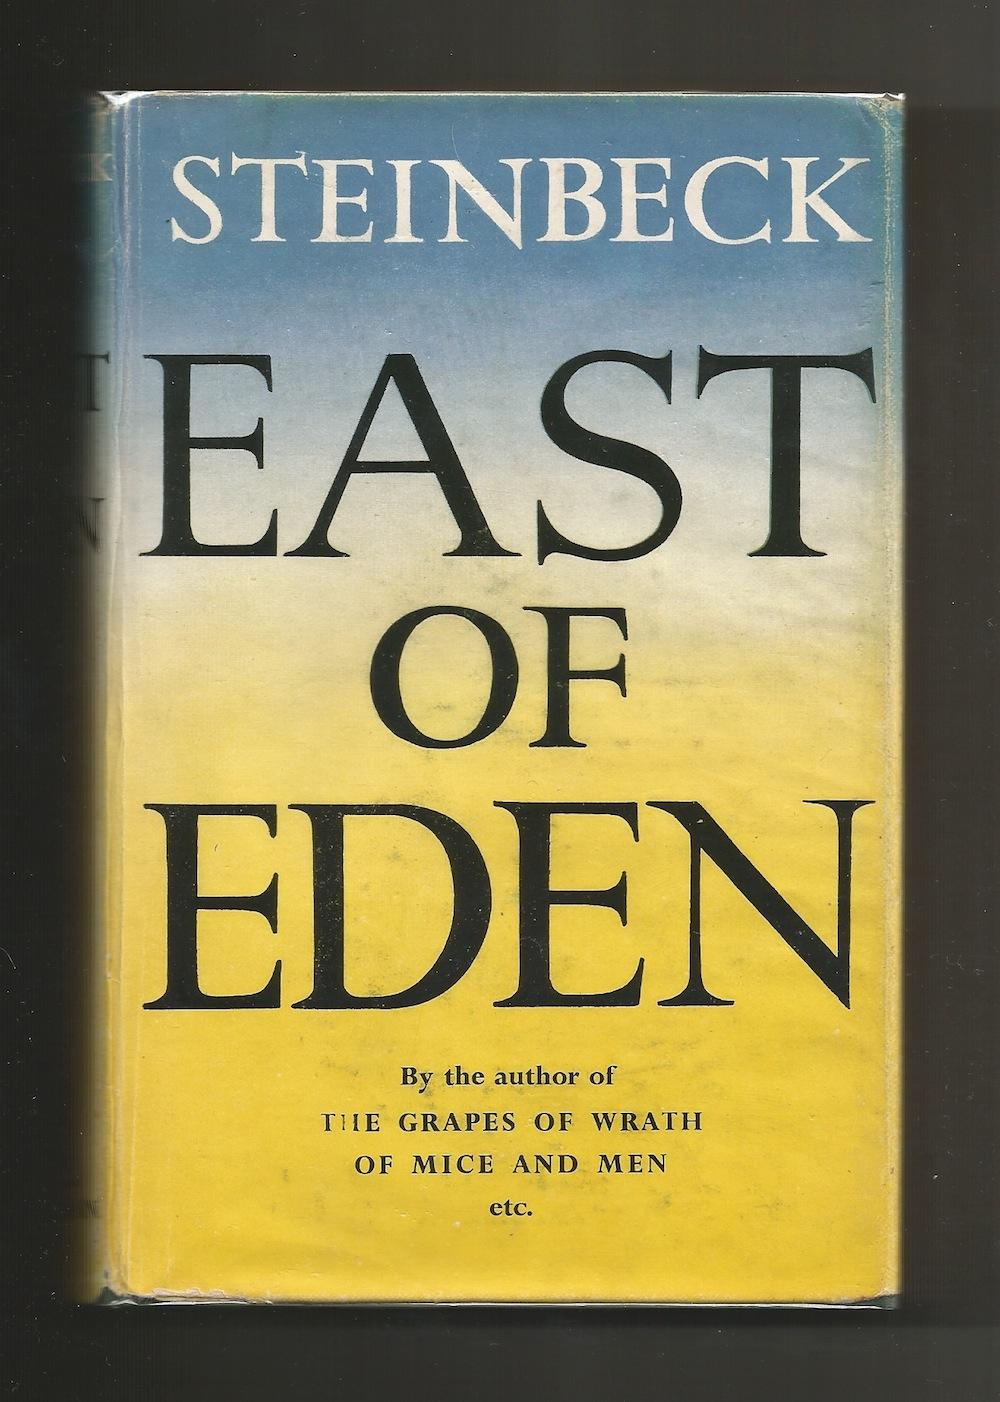 a book analysis of east of eden by john steinbeck The characters are all beautifully drawn and the story is captivating i'll add   east of eden by john steinbeck was our book club pick for this month i almost.